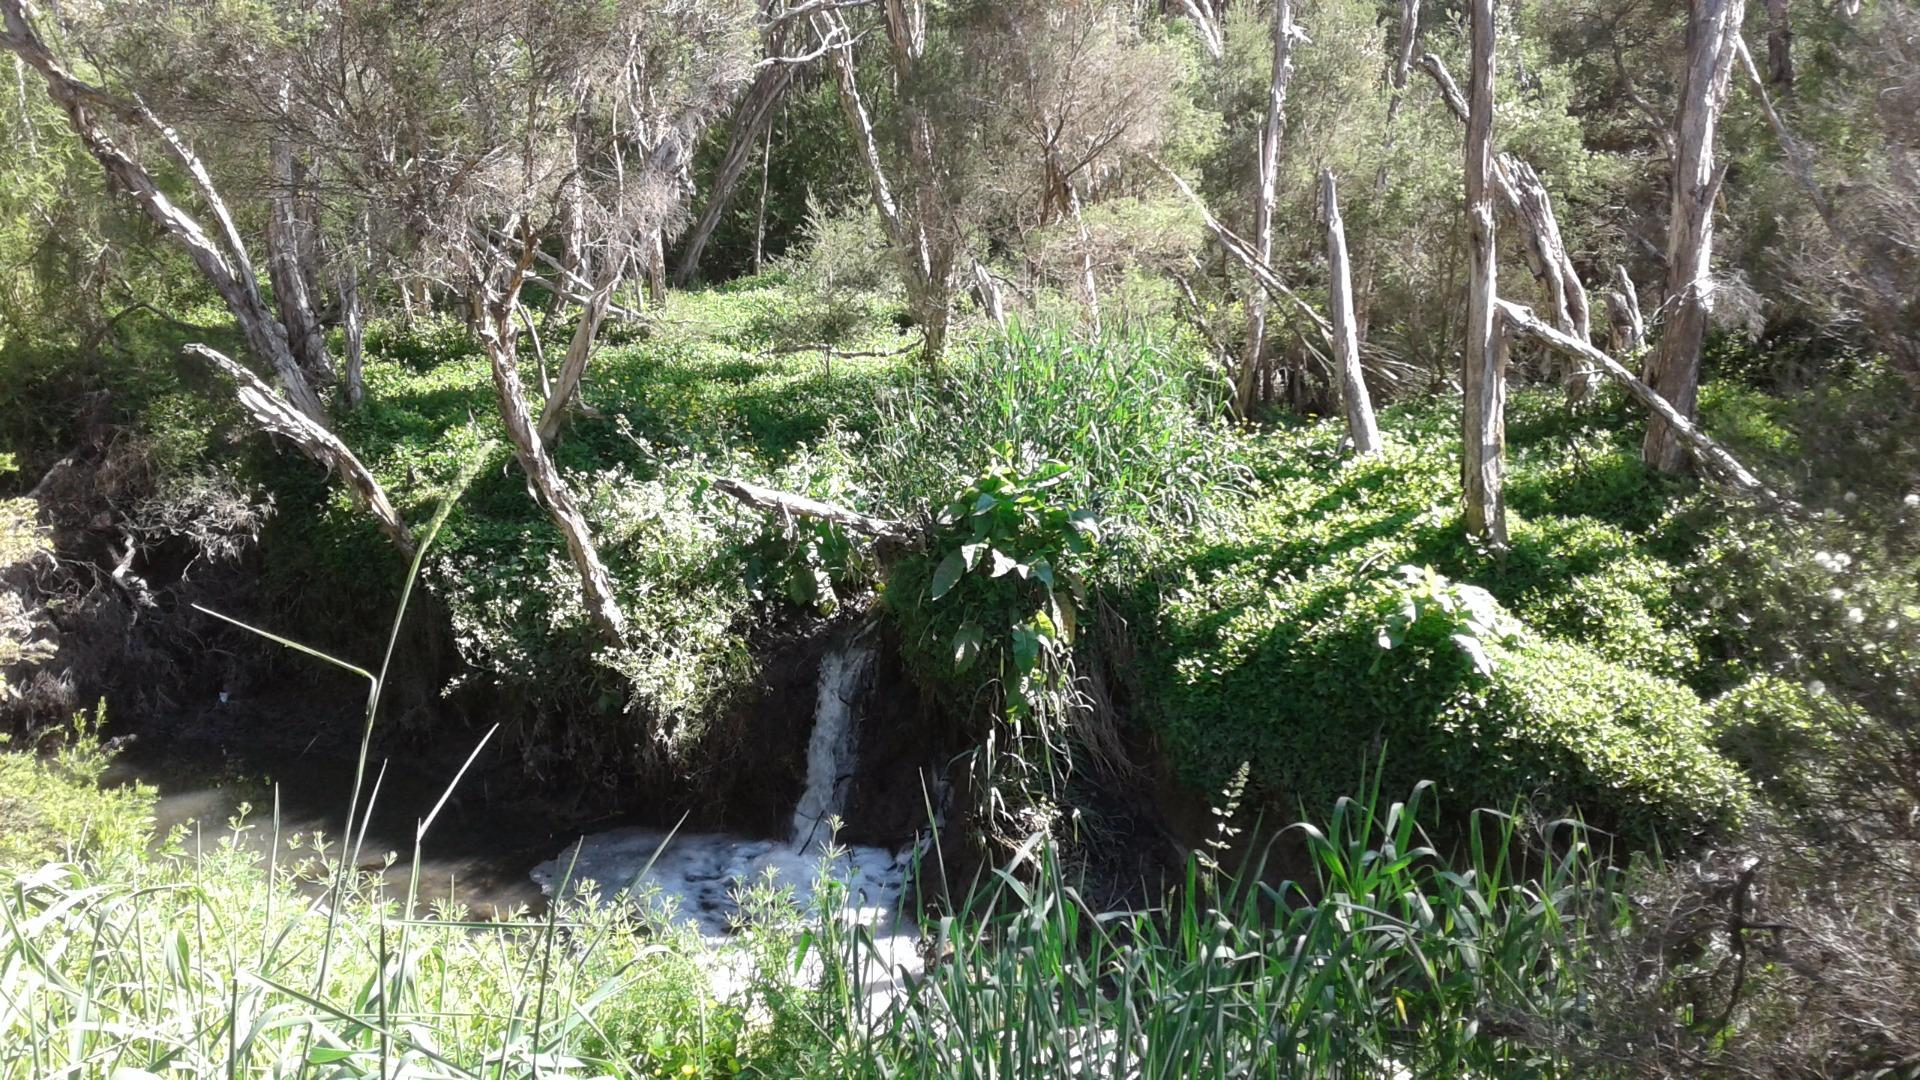 Instream to Dandenong Creek from Boral drainage showing 2 instreams and erosion between